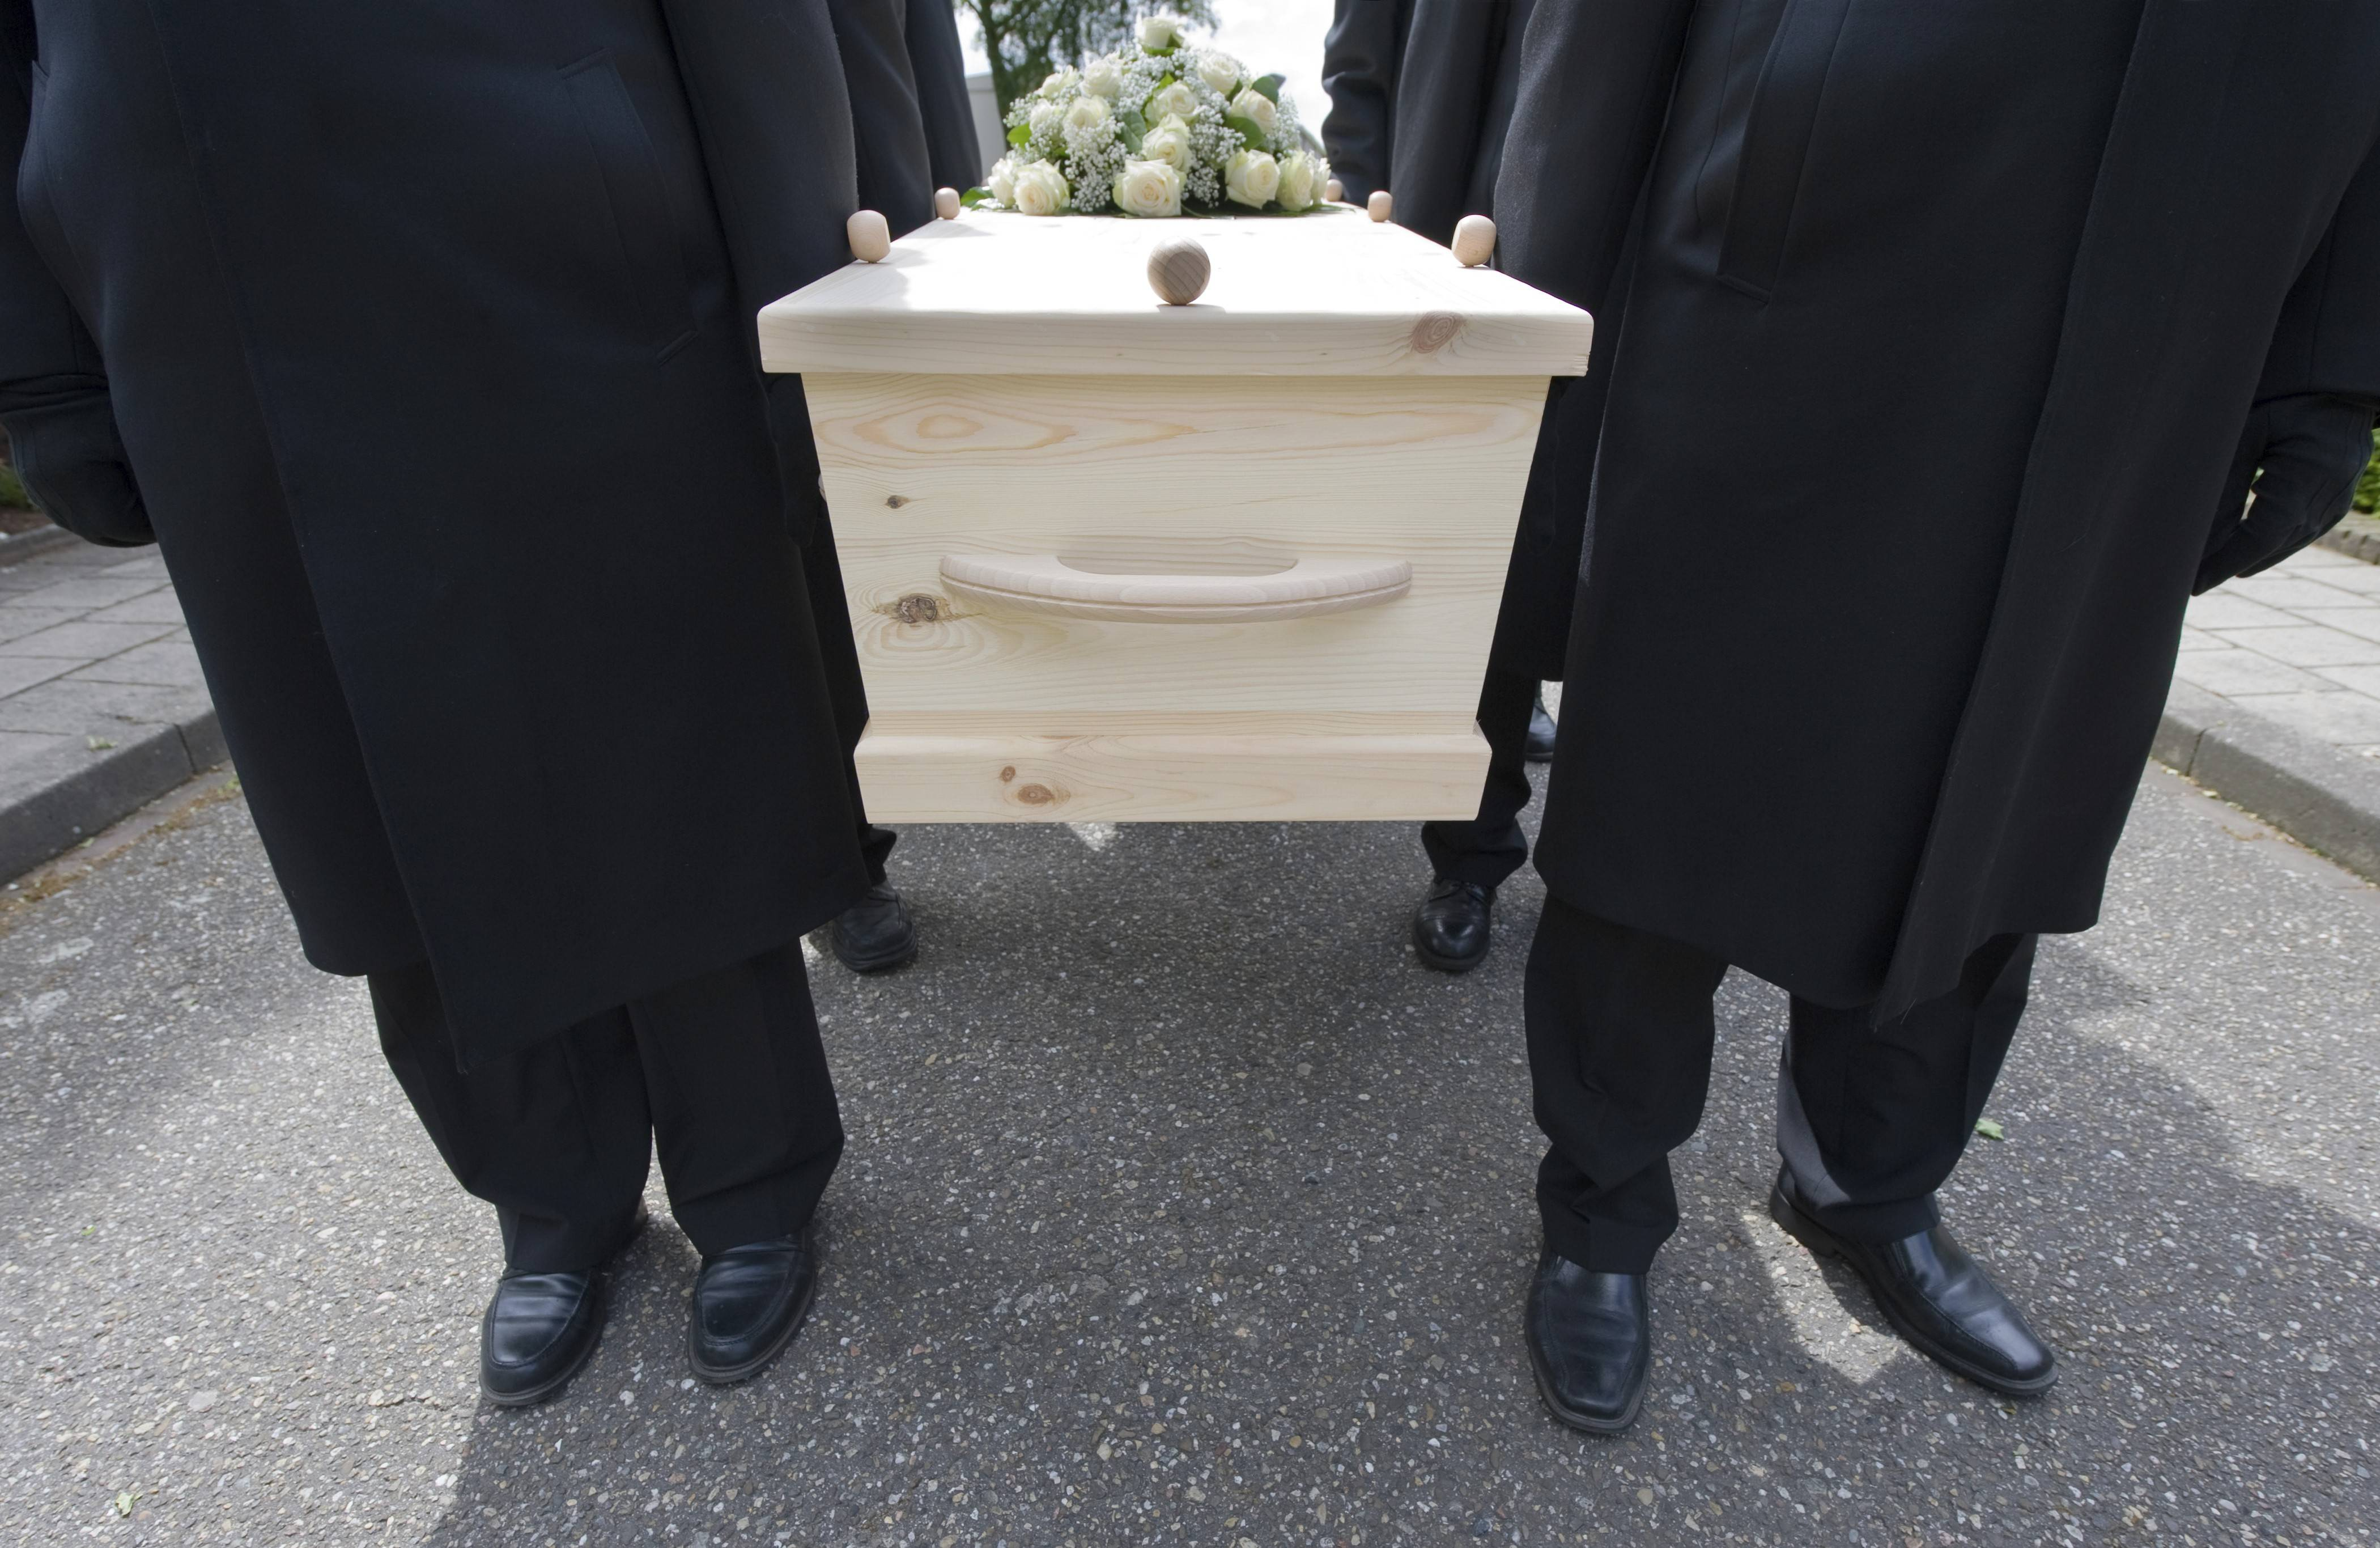 Rauner cut funeral funding for poor, so now who pays?